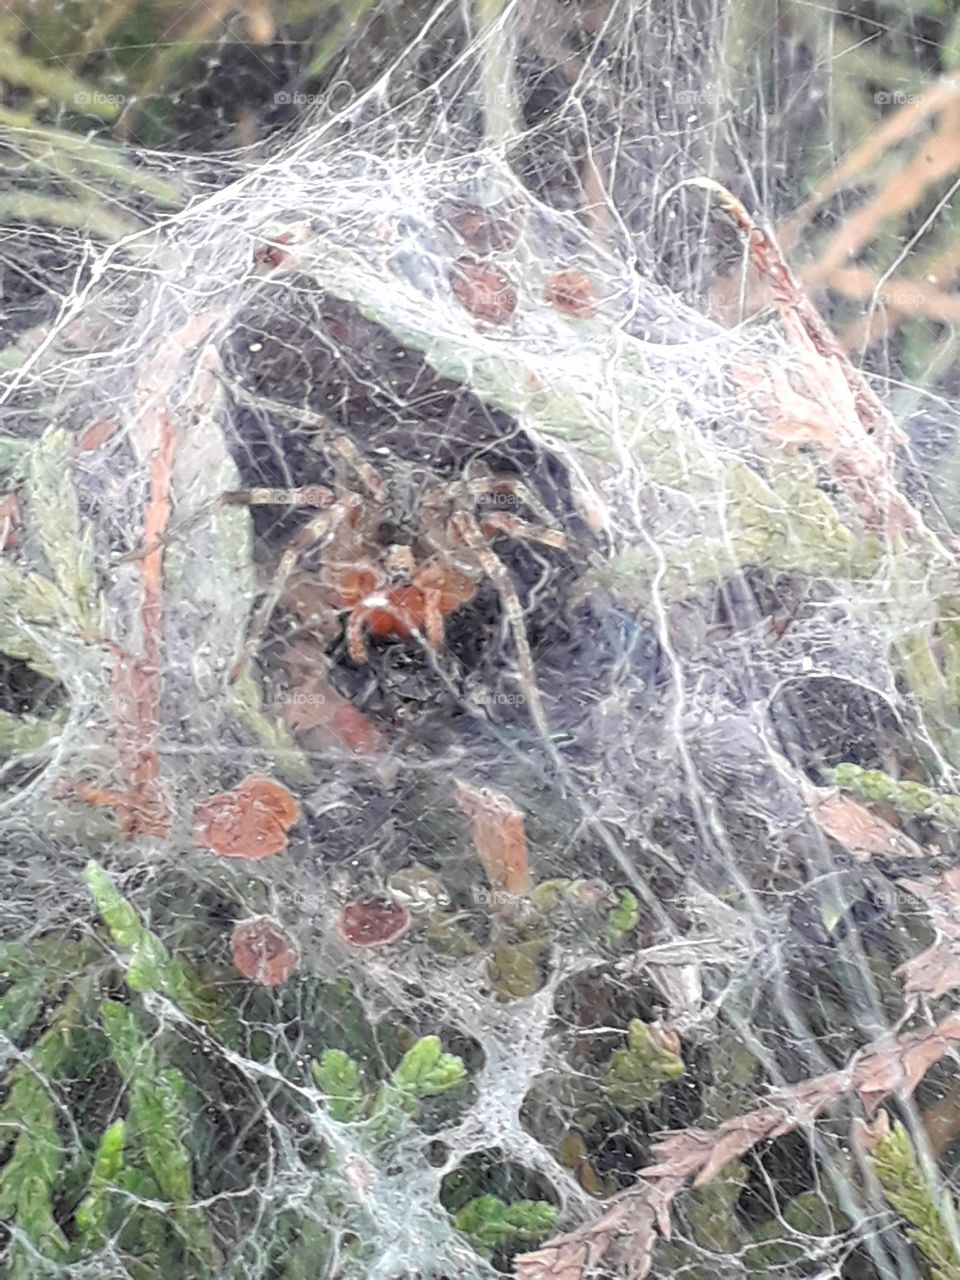 Spider net and home